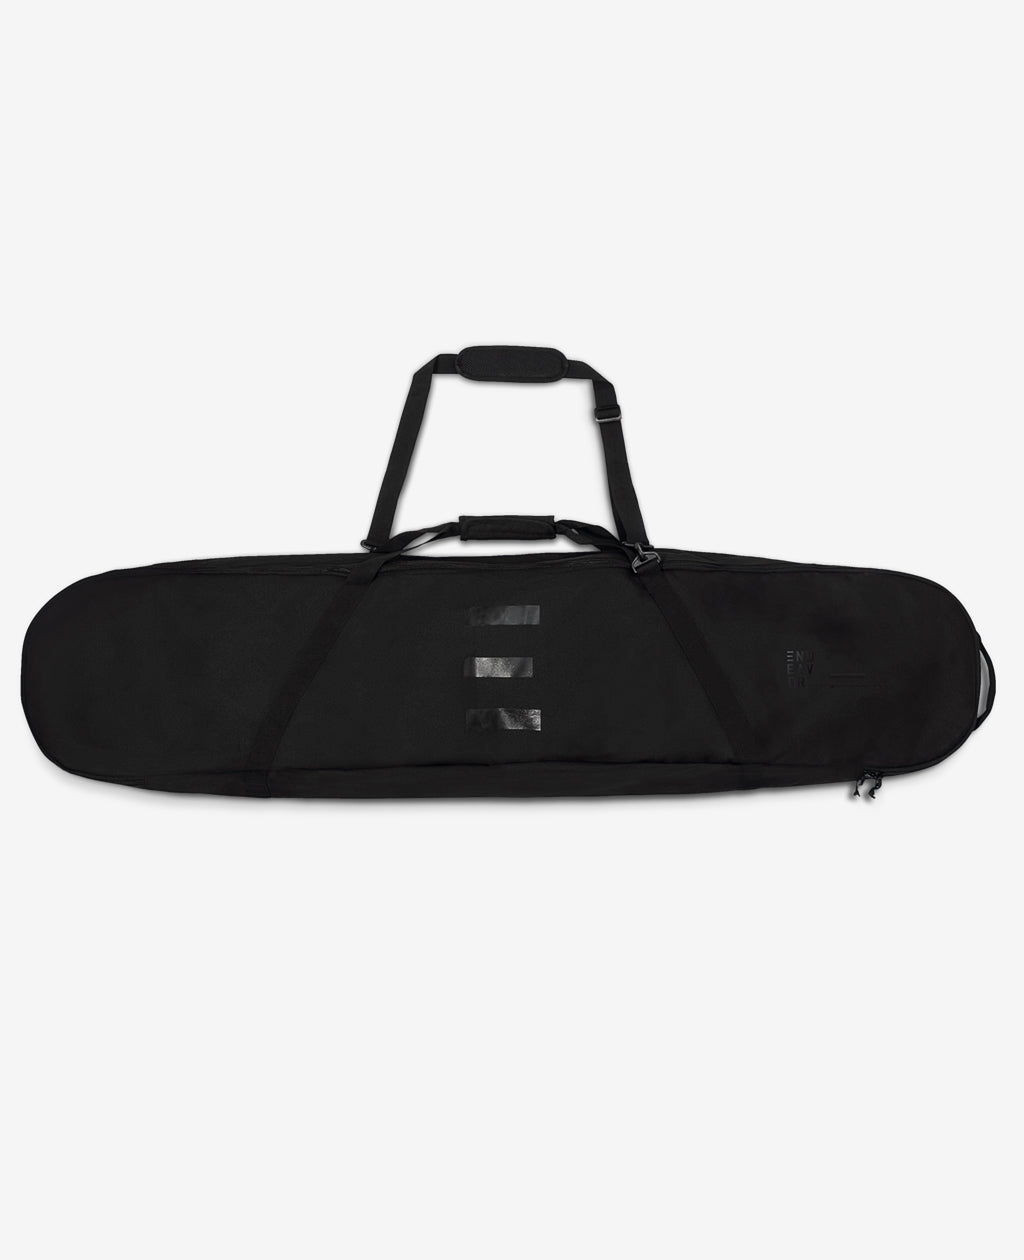 Trail Board Bag